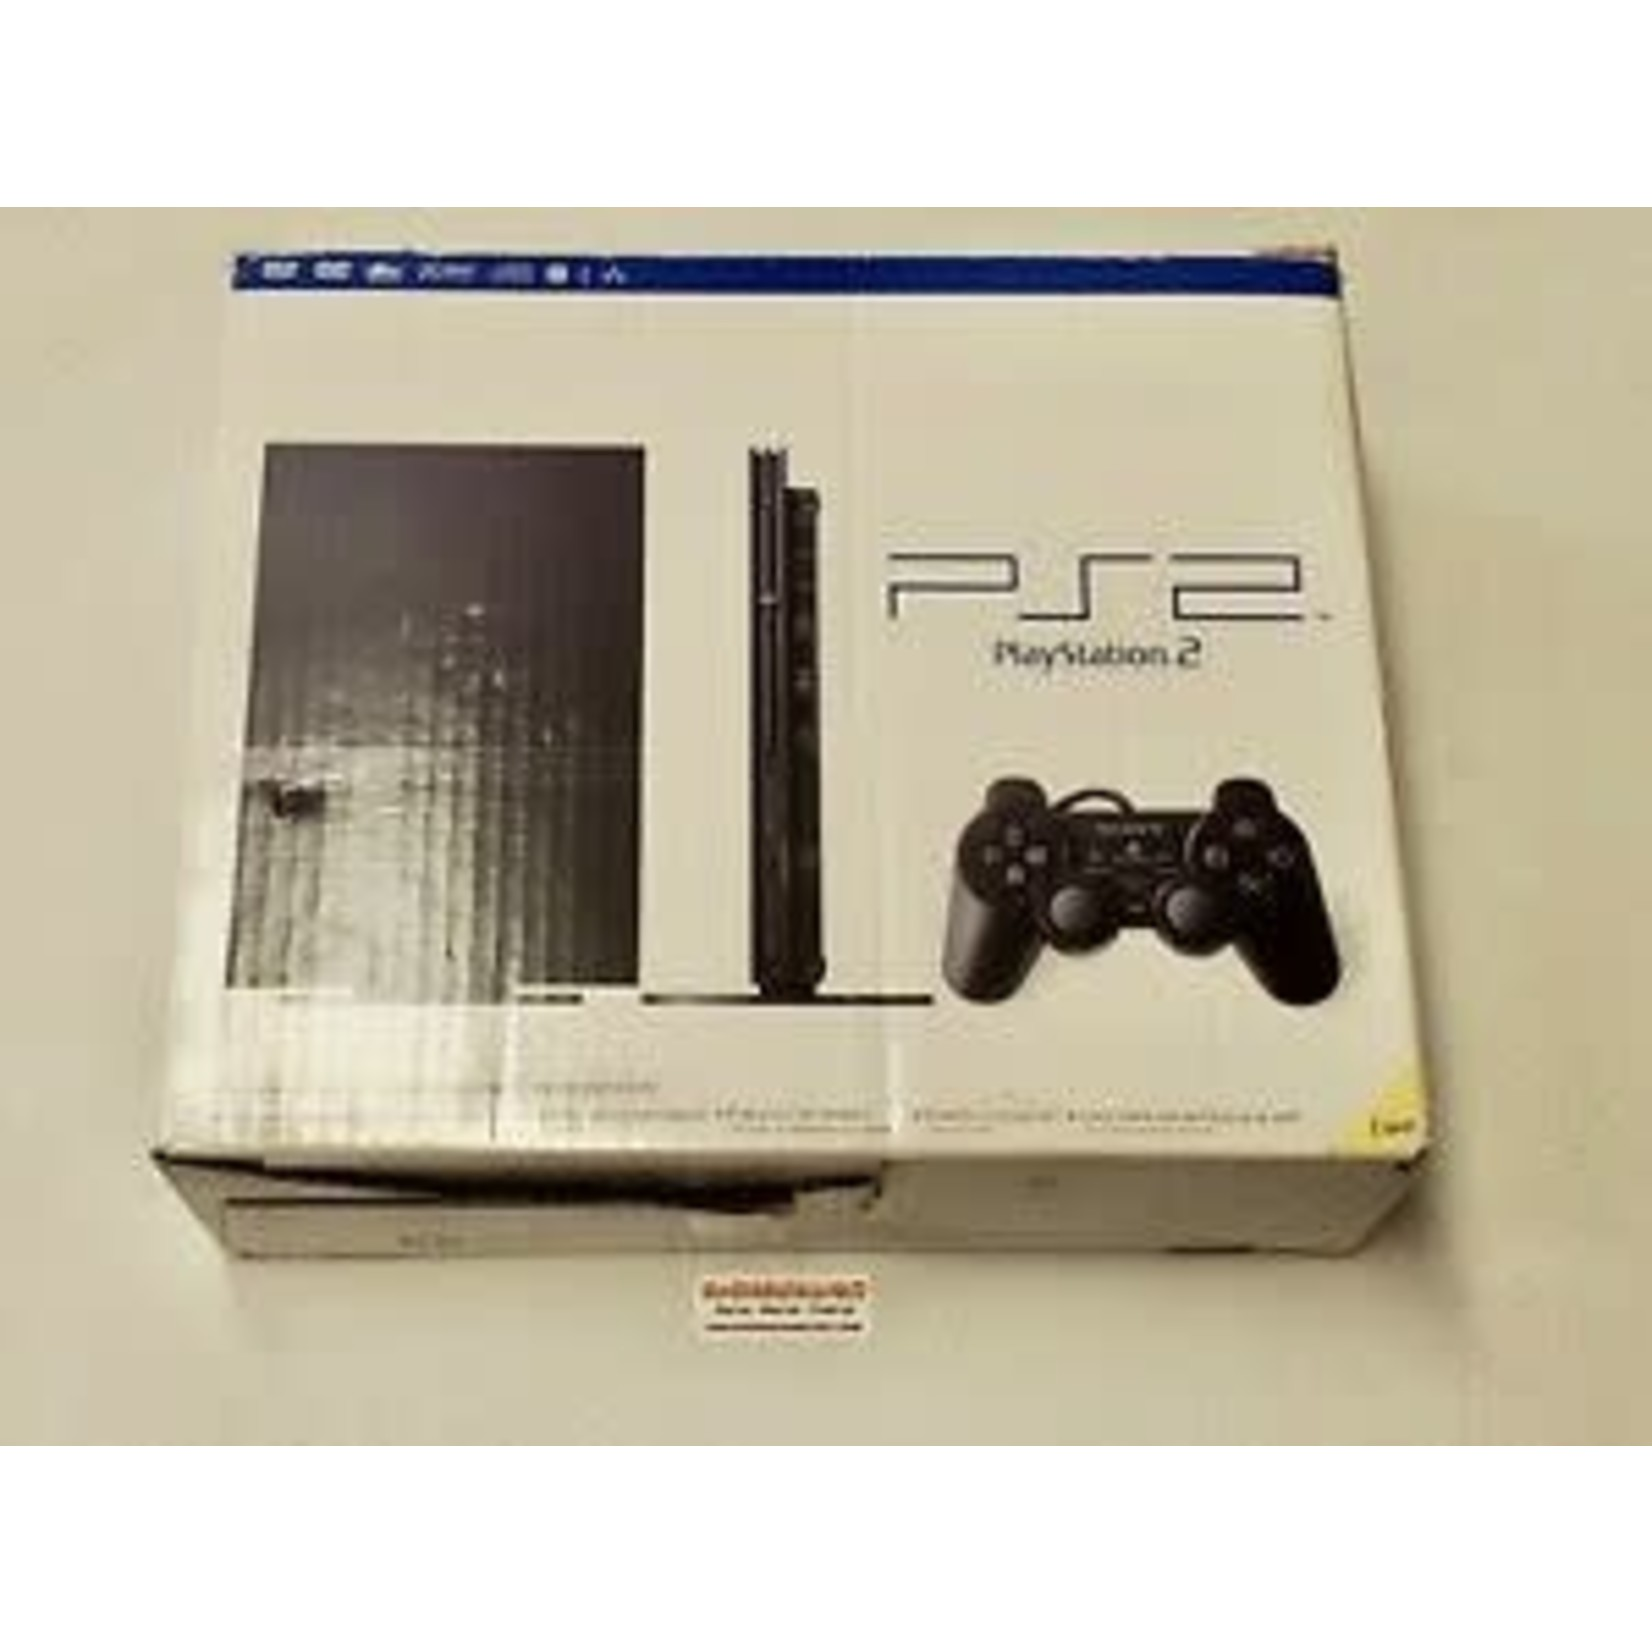 Playstation 2 Console New in Box (PS2)